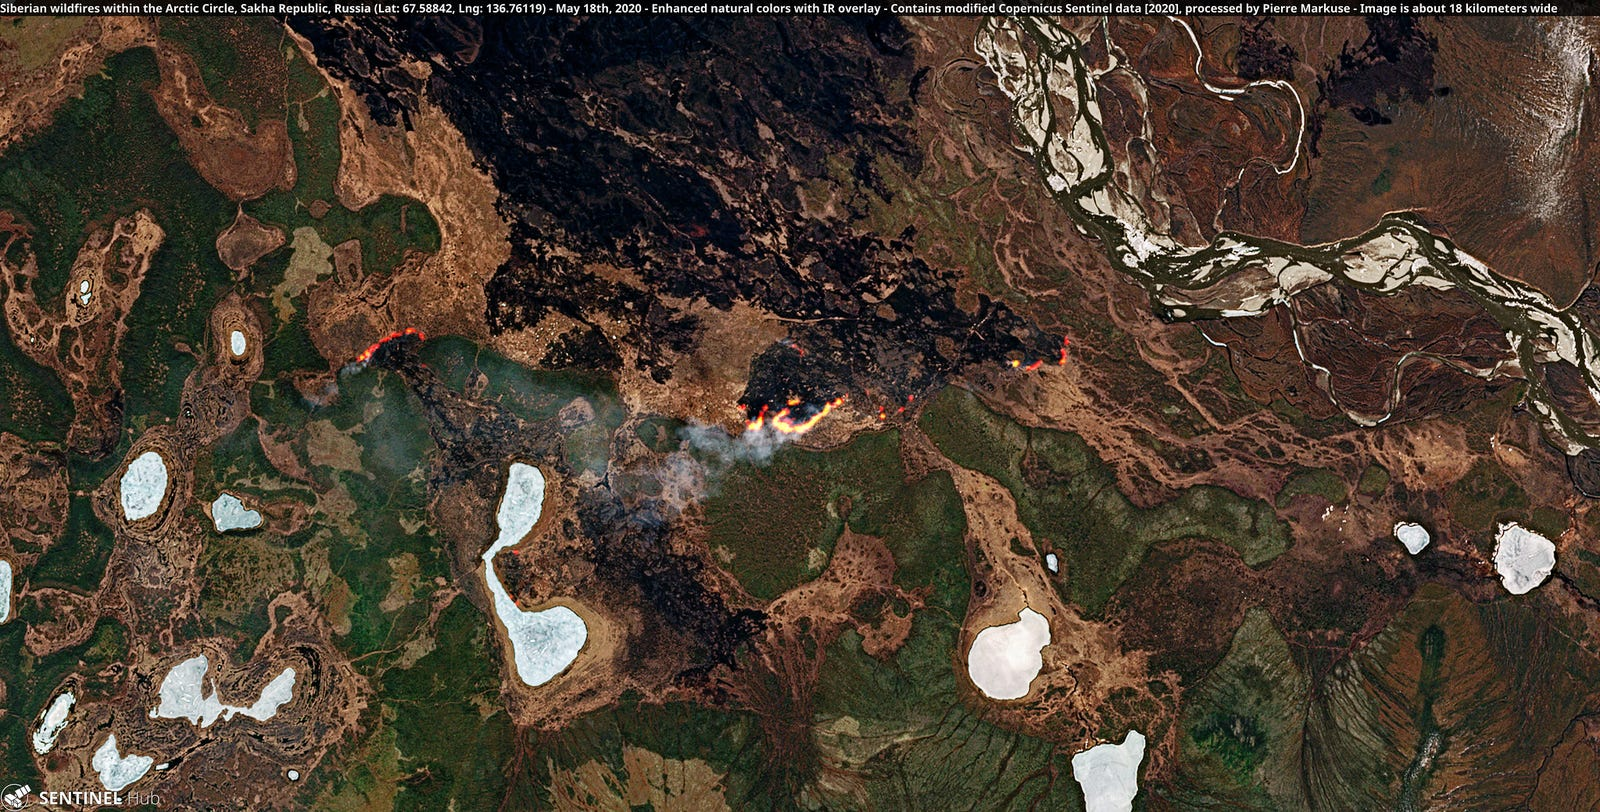 Siberian wildfires within the Arctic Circle